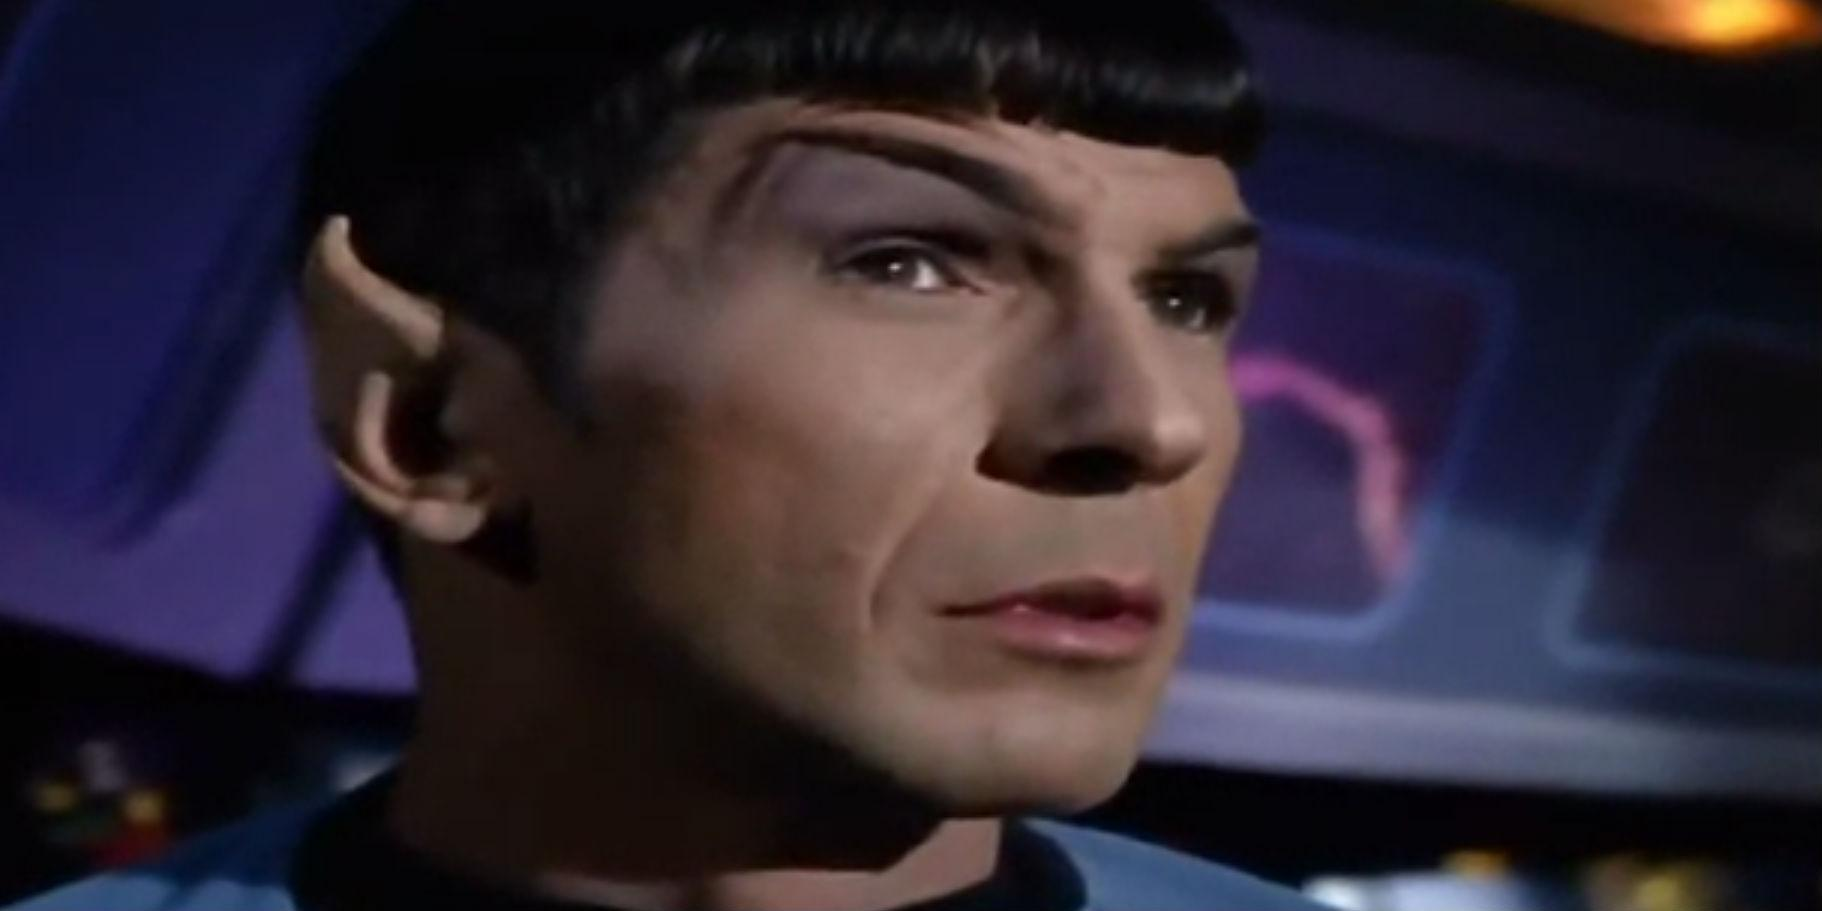 Kirk and Spock selling AT&T-DirecTV bundles http://t.co/7jUtfPUia6, so Sprint basically = Khan http://t.co/HcJheTmJHE http://t.co/yB2EBDYDnp